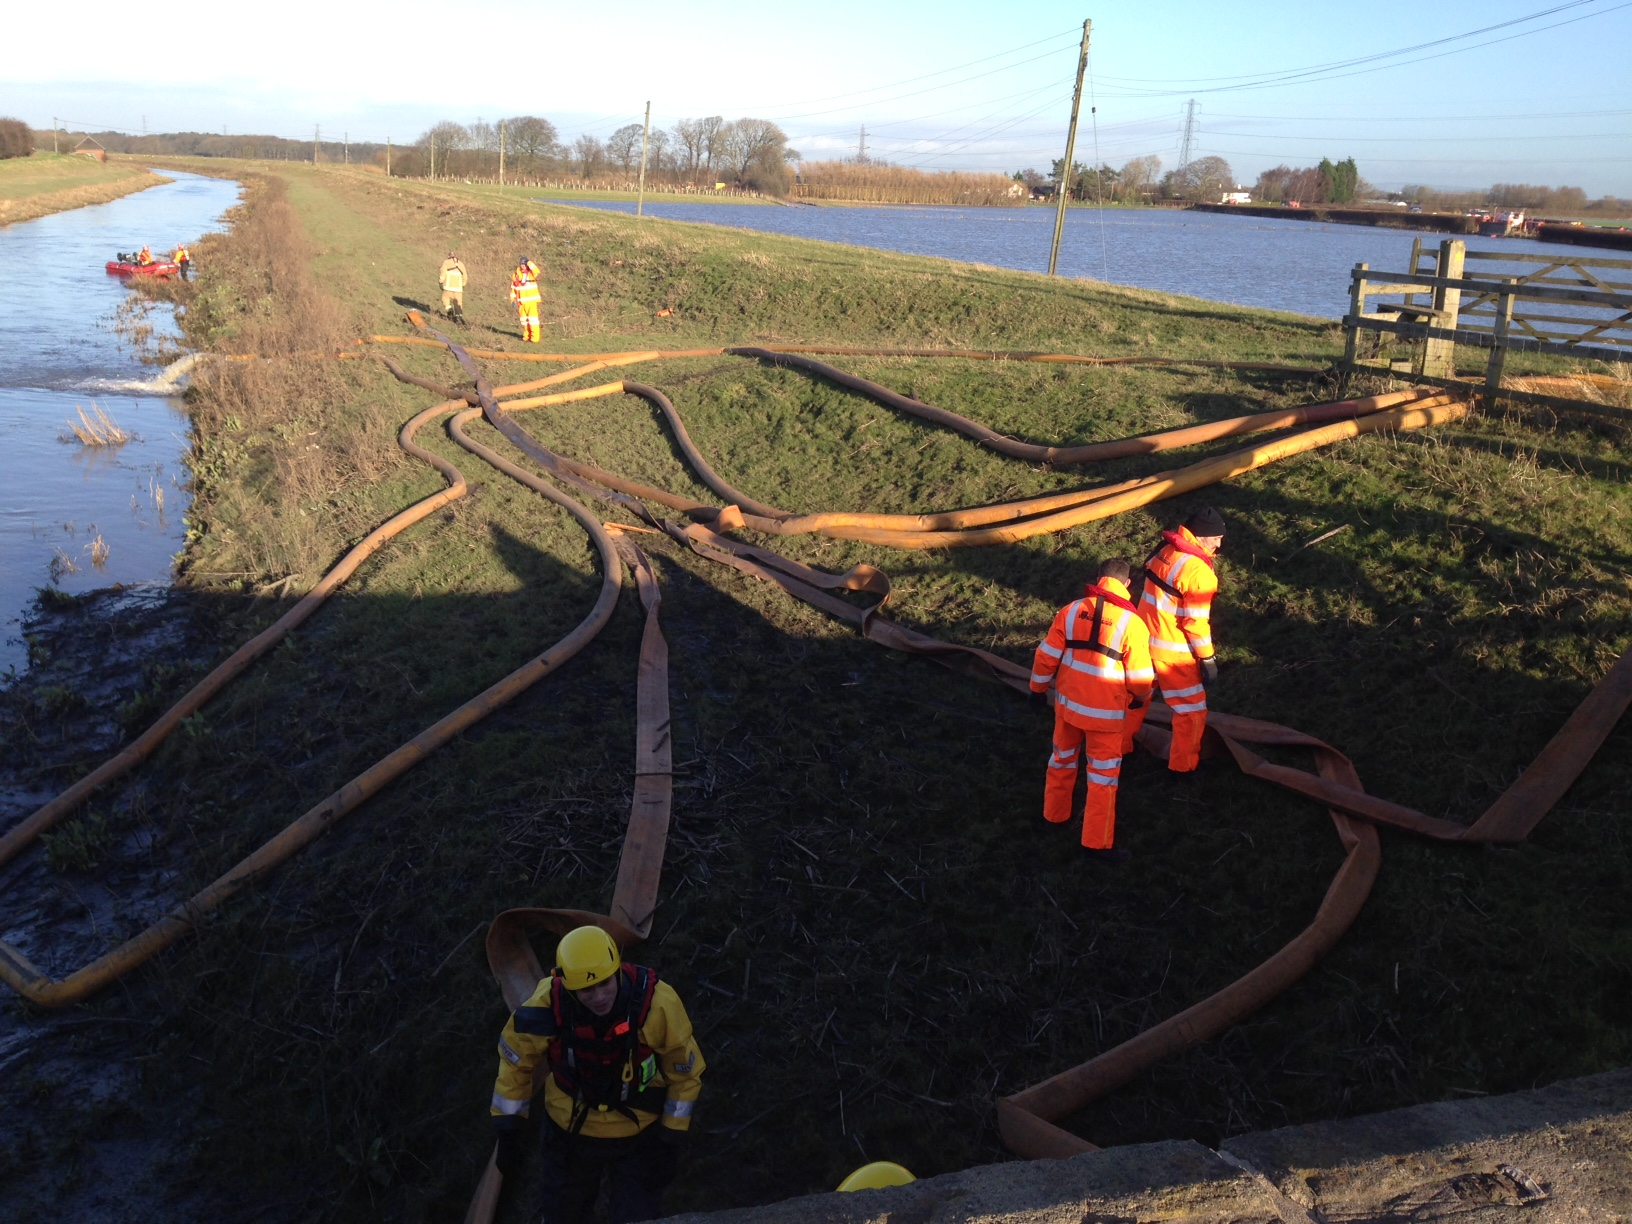 Flood scene in Lancashire attended by Shropshire fire crew